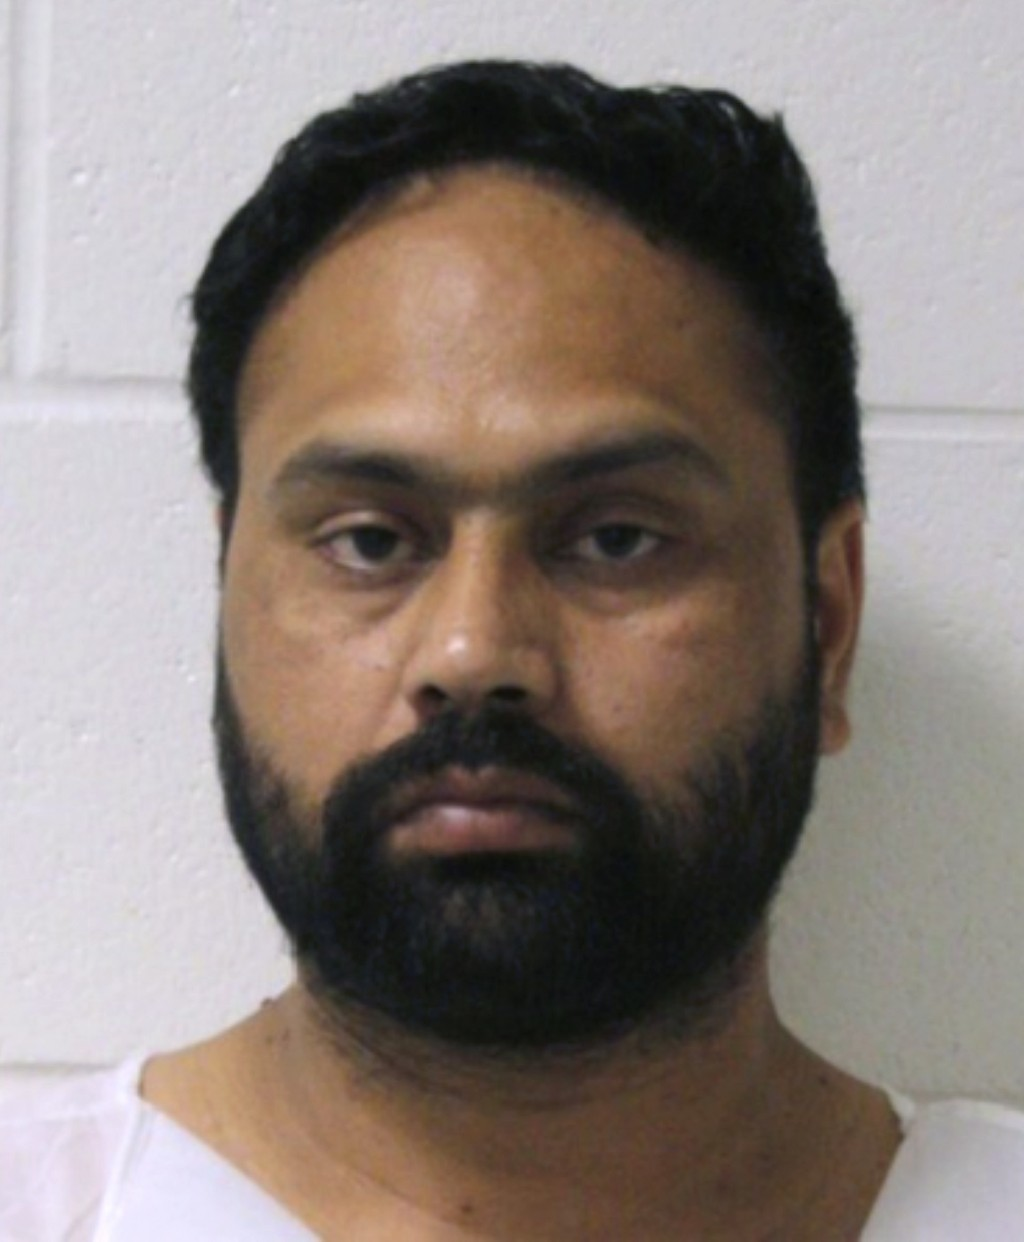 FILE - This booking photo released by the Branford Police Department shows Gurpreet Singh, arrested Tuesday, July 2, 2019, in Branford, Conn. Butler C